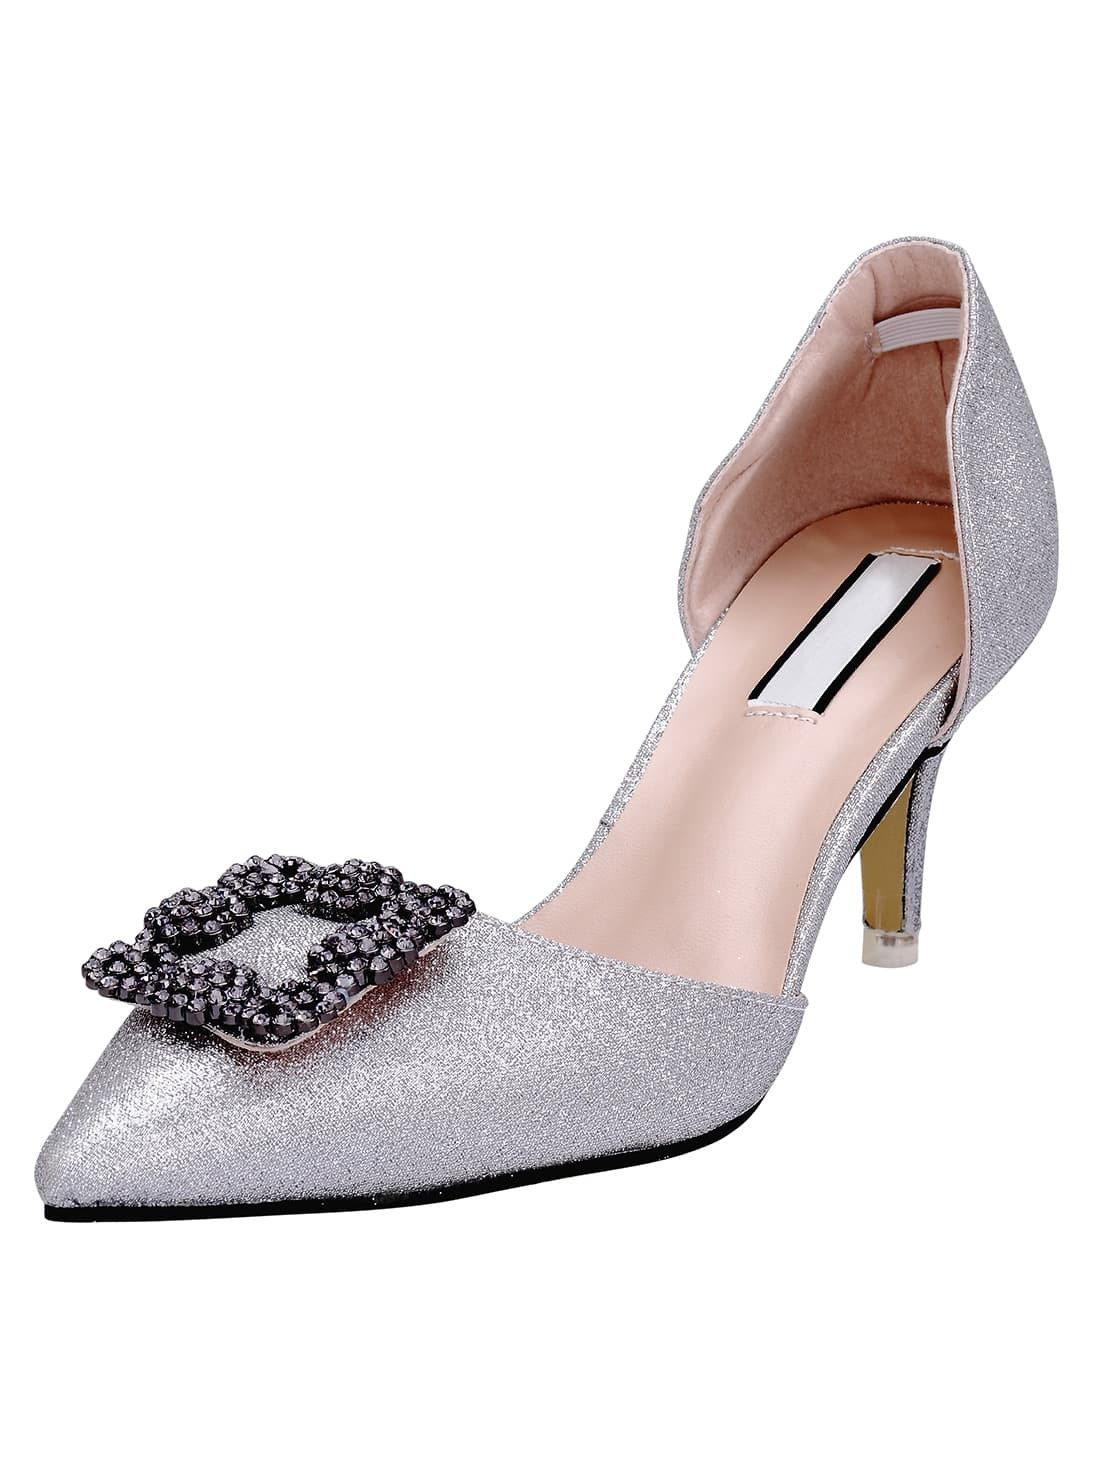 Silver Point Toe With Diamond High Heeled Pumps -SheIn